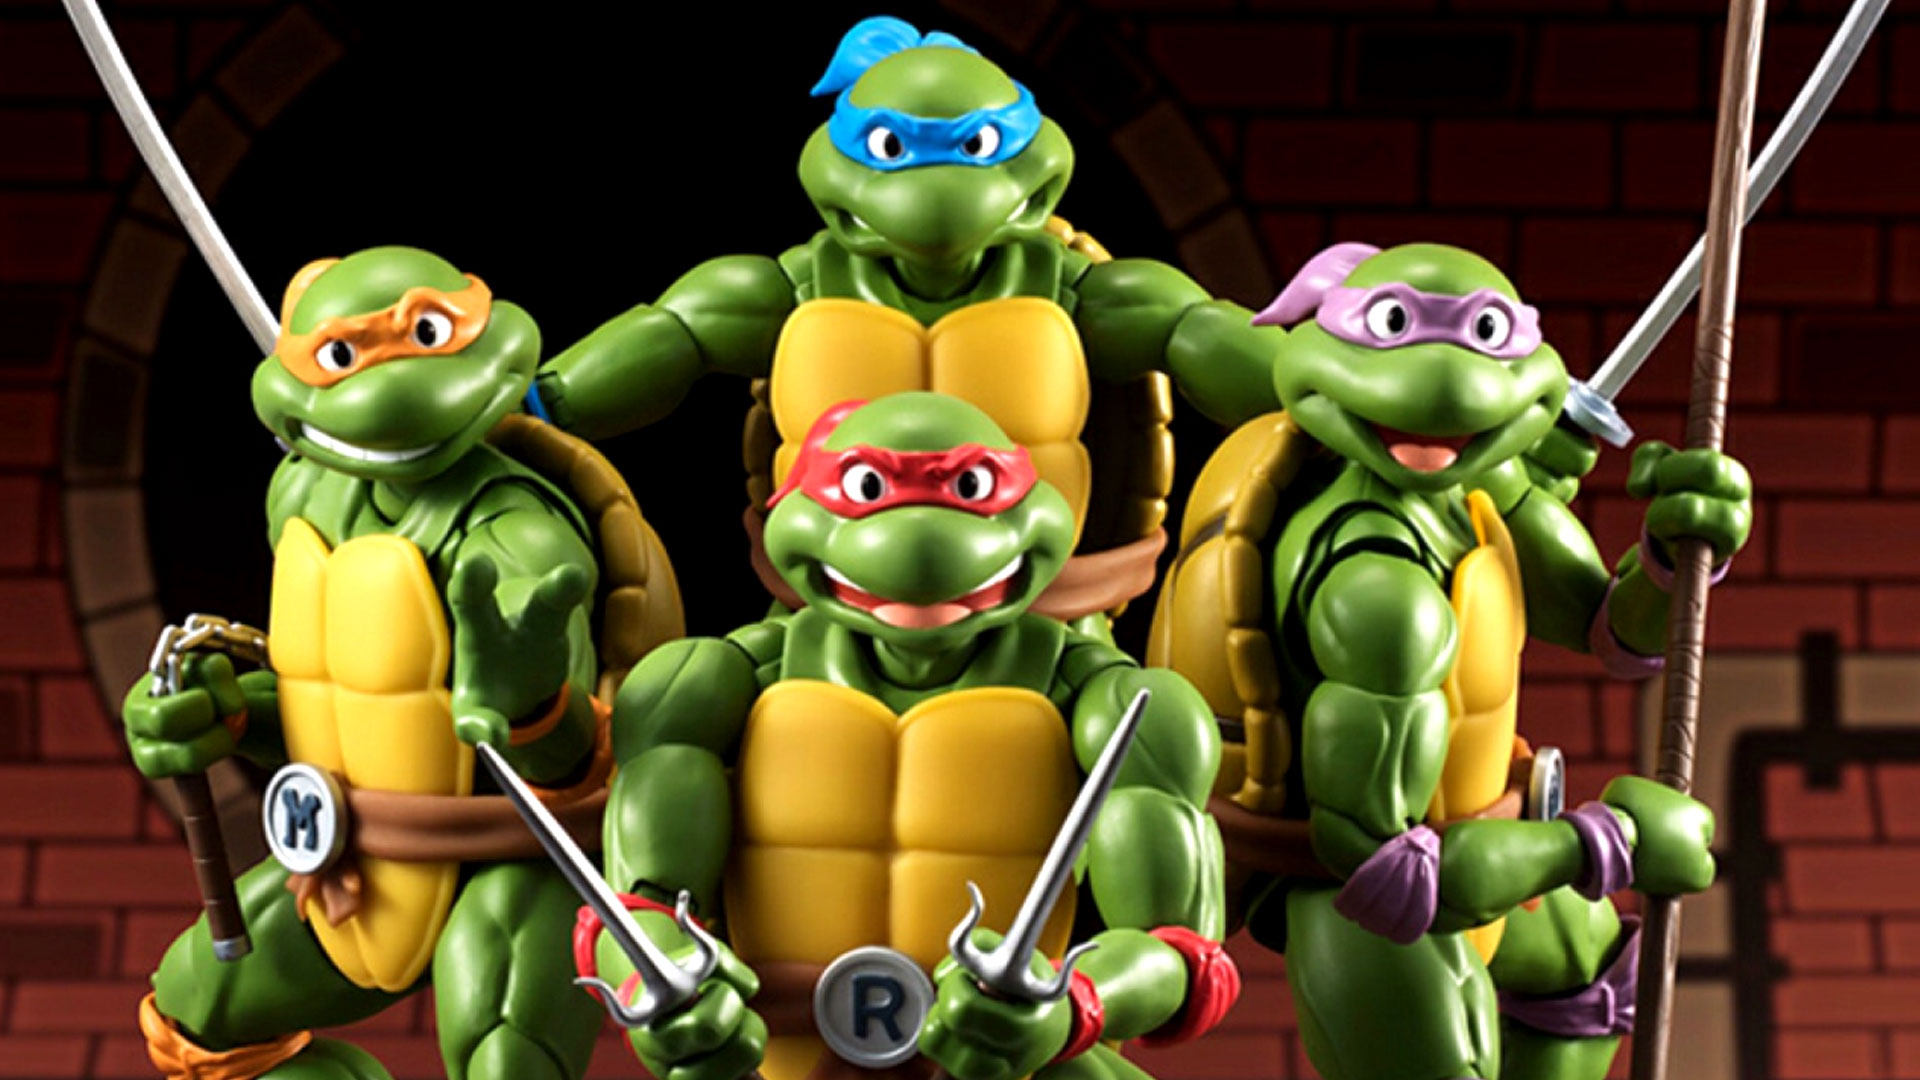 These Japanese Ninja Turtles Figures are AWESOME